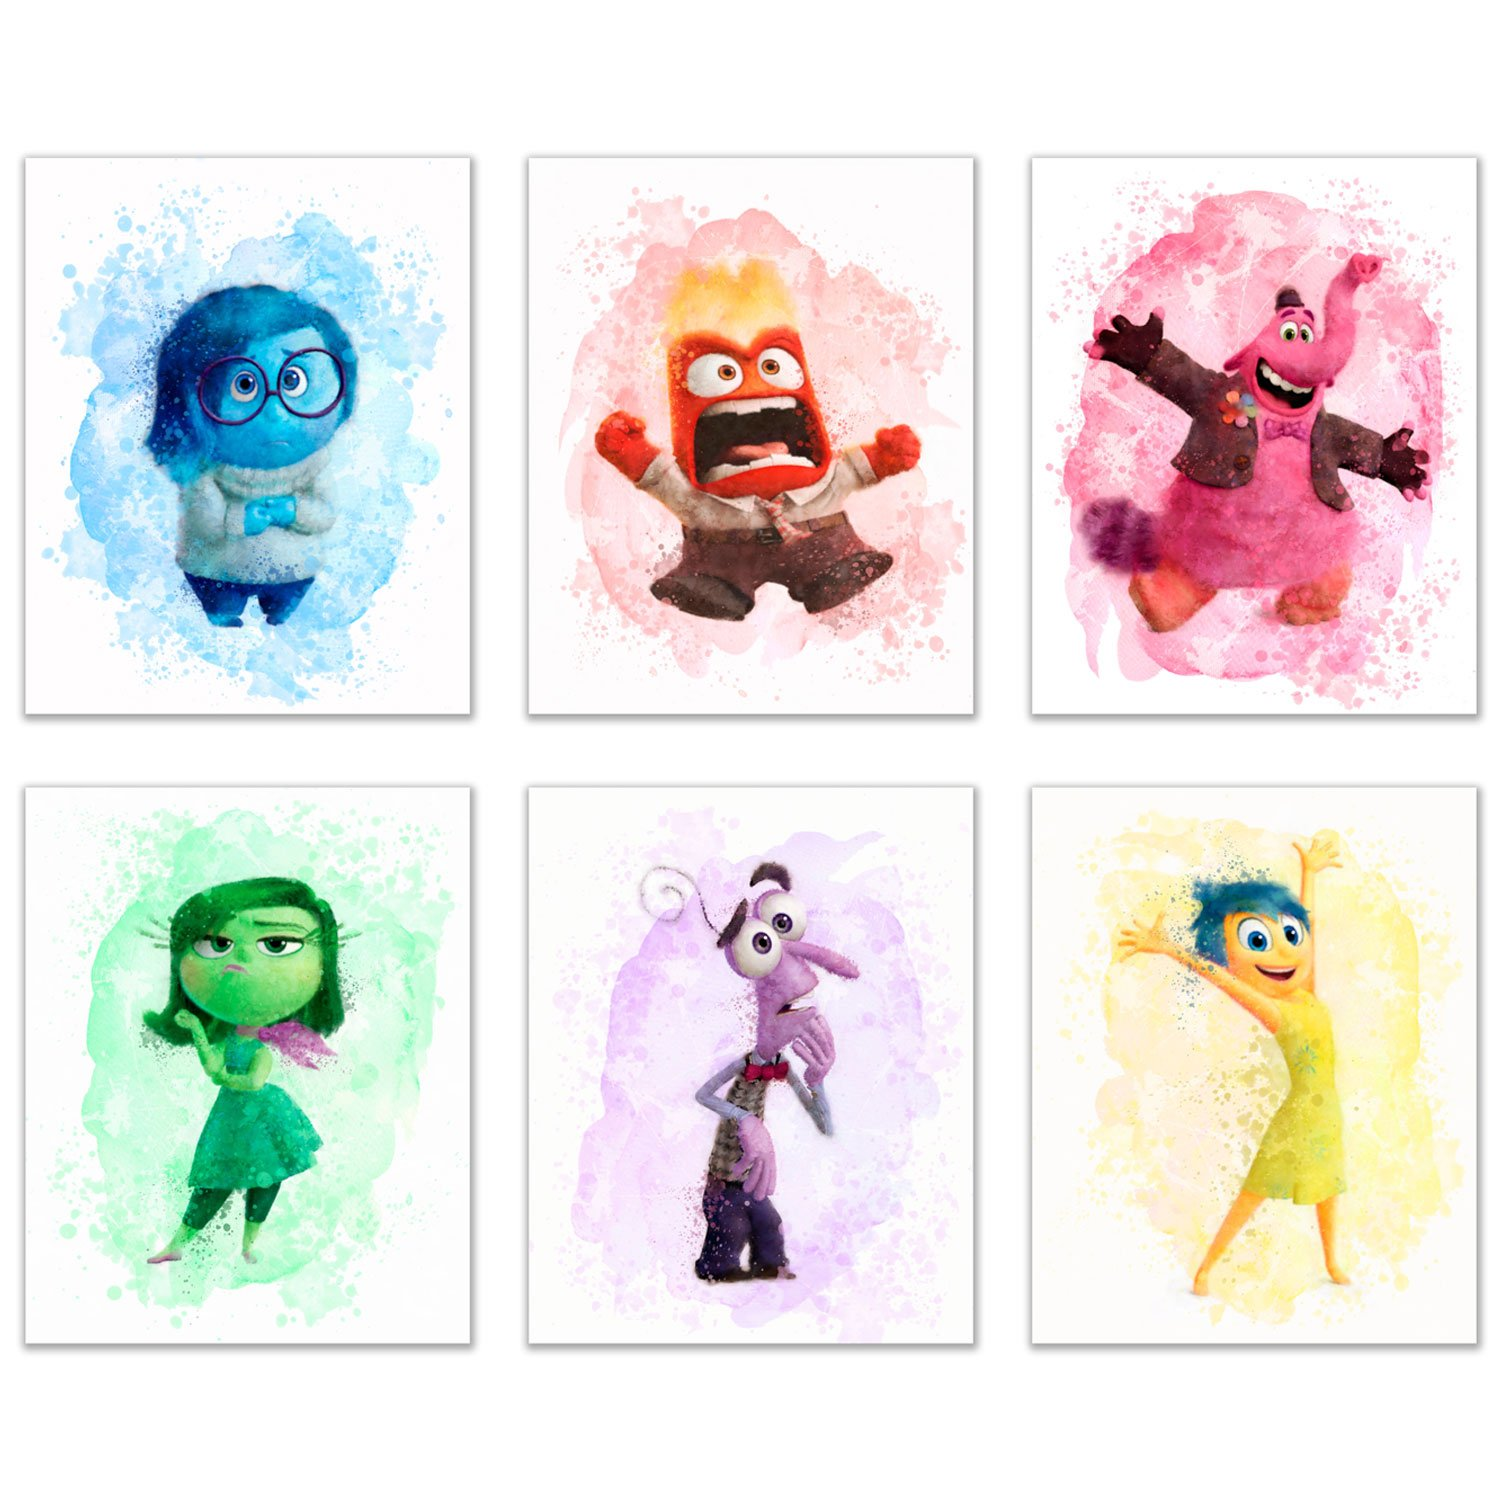 Summit Designs Inside Out Movie Wall Decor Art Prints - Set of 6 (8x10) Poster Photos - Bing Bong Disgust Joy Happiness